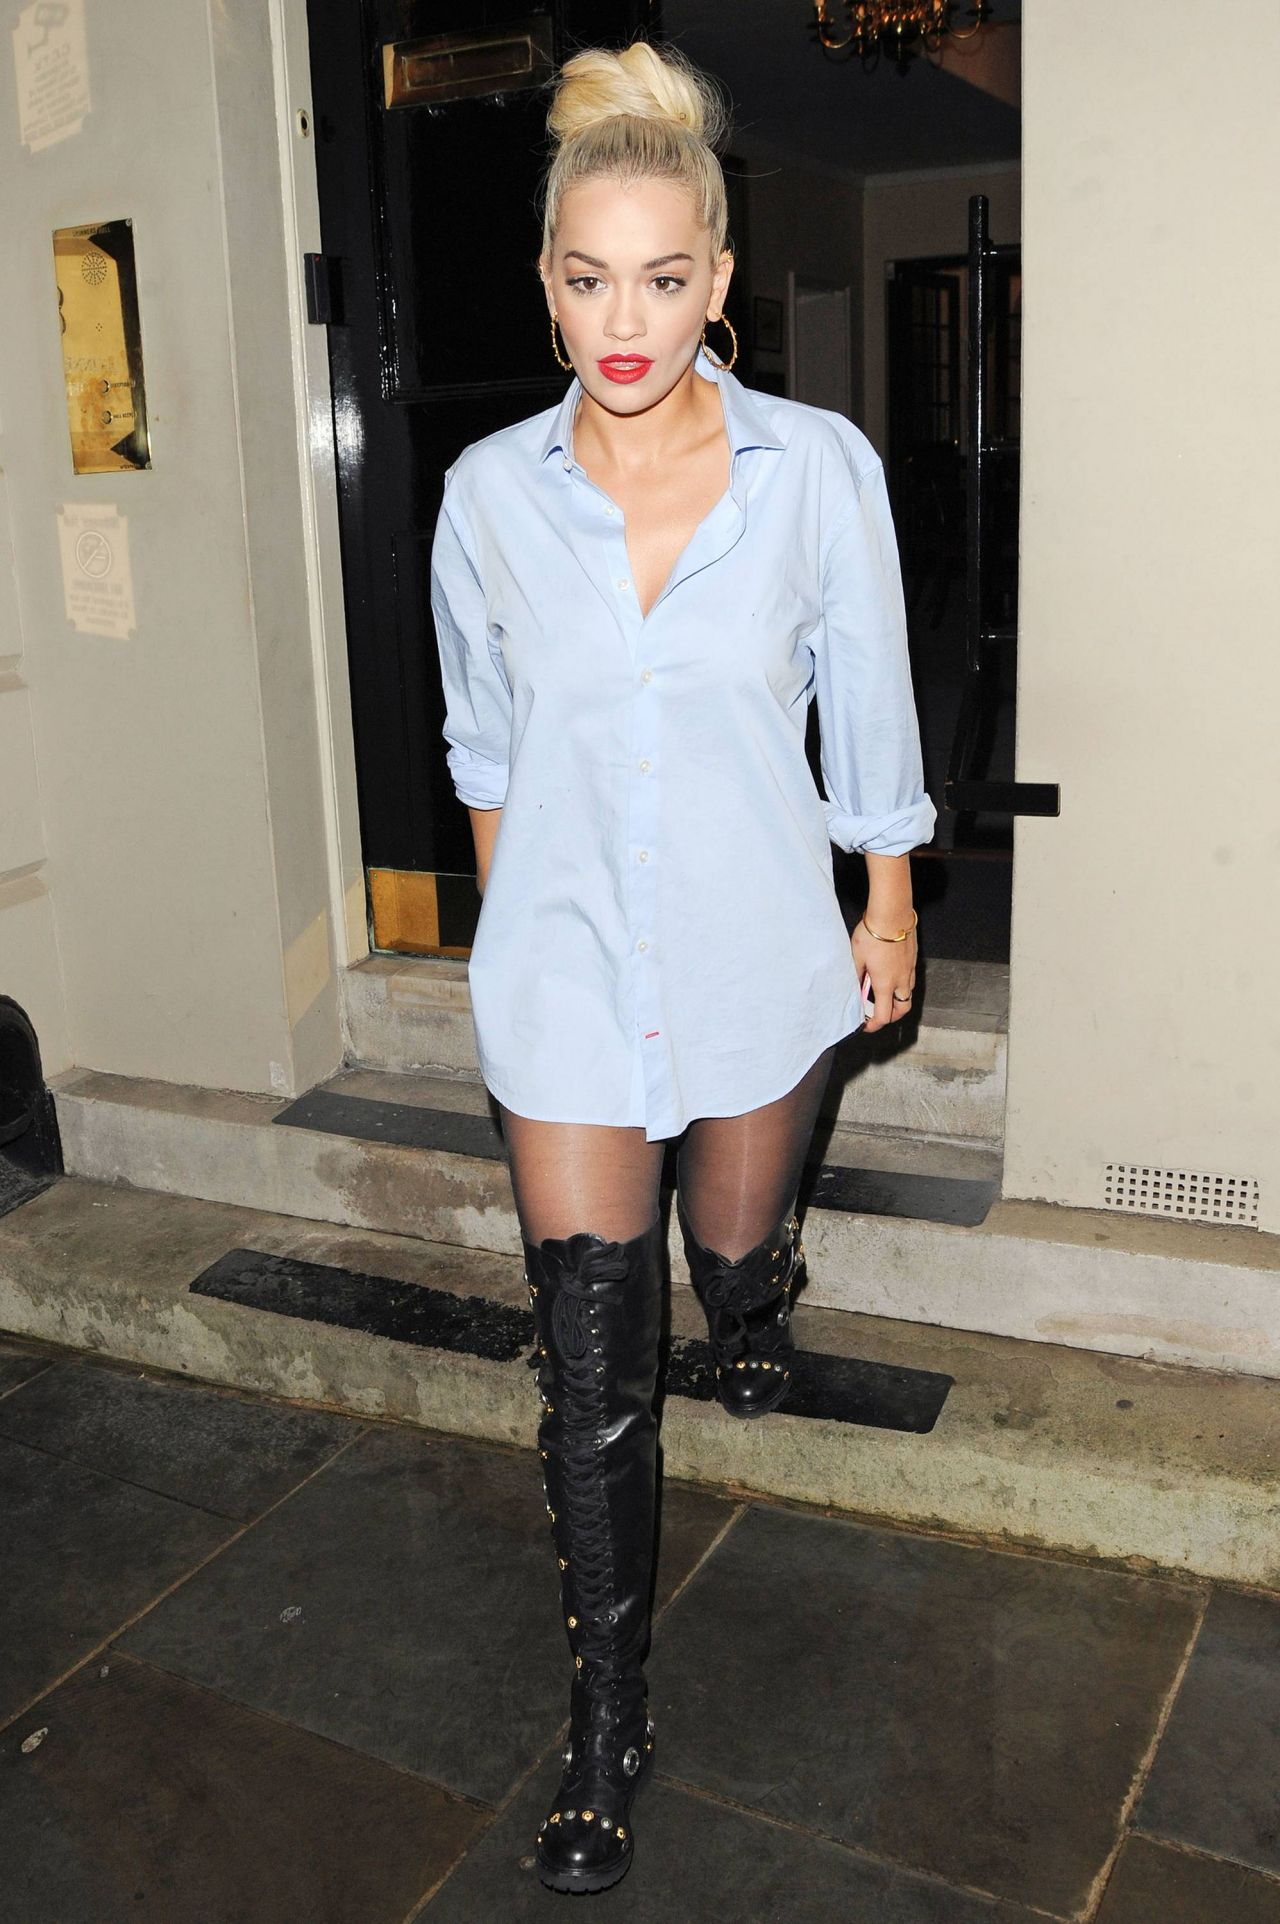 rita-ora-casual-style-out-in-london-july-2015_2